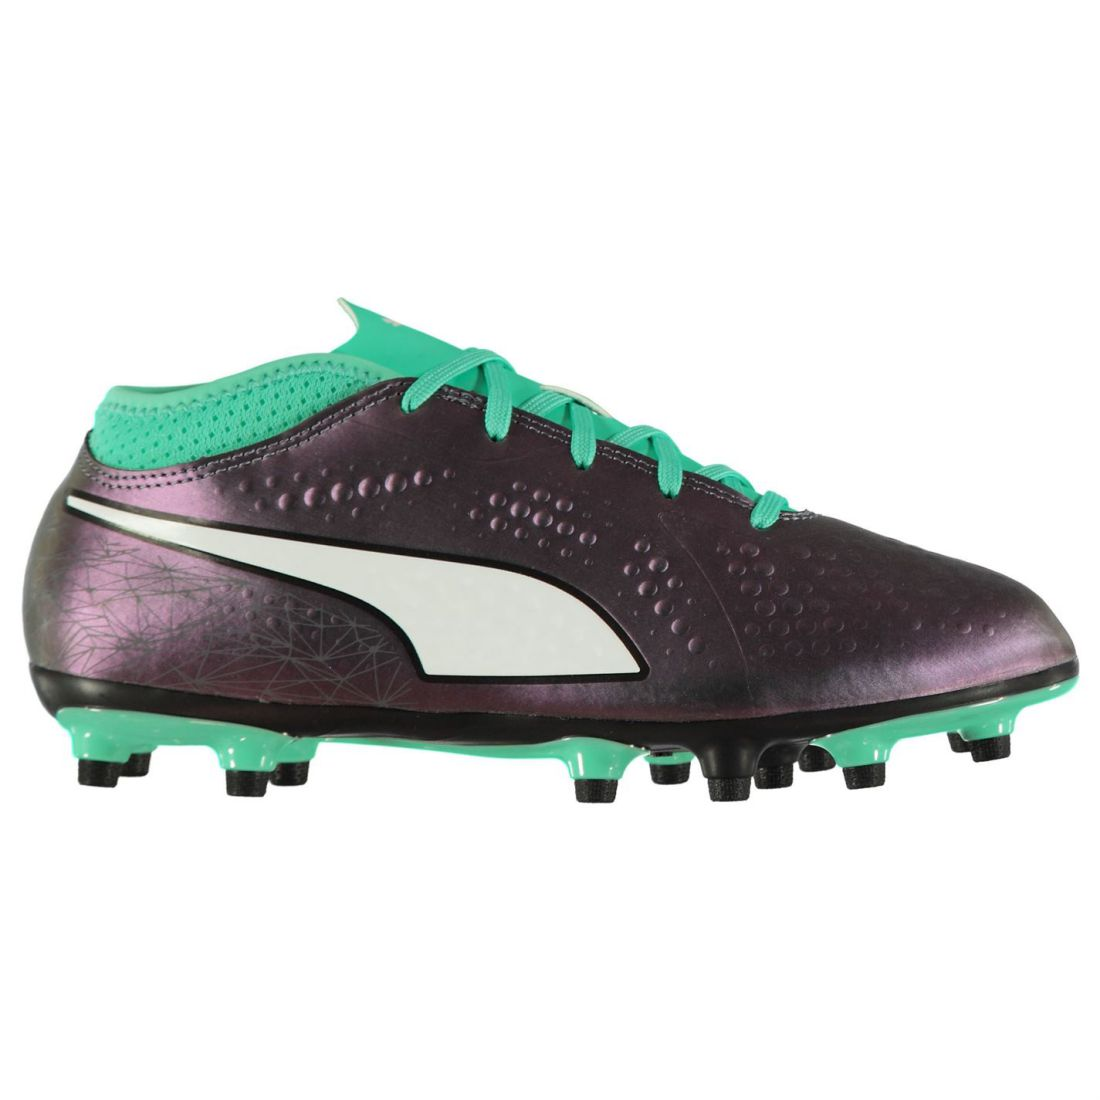 45fb1a76ded Details about Puma Kids Boys One 4 Junior FG Football Boots Firm Ground  Lace Up Studs